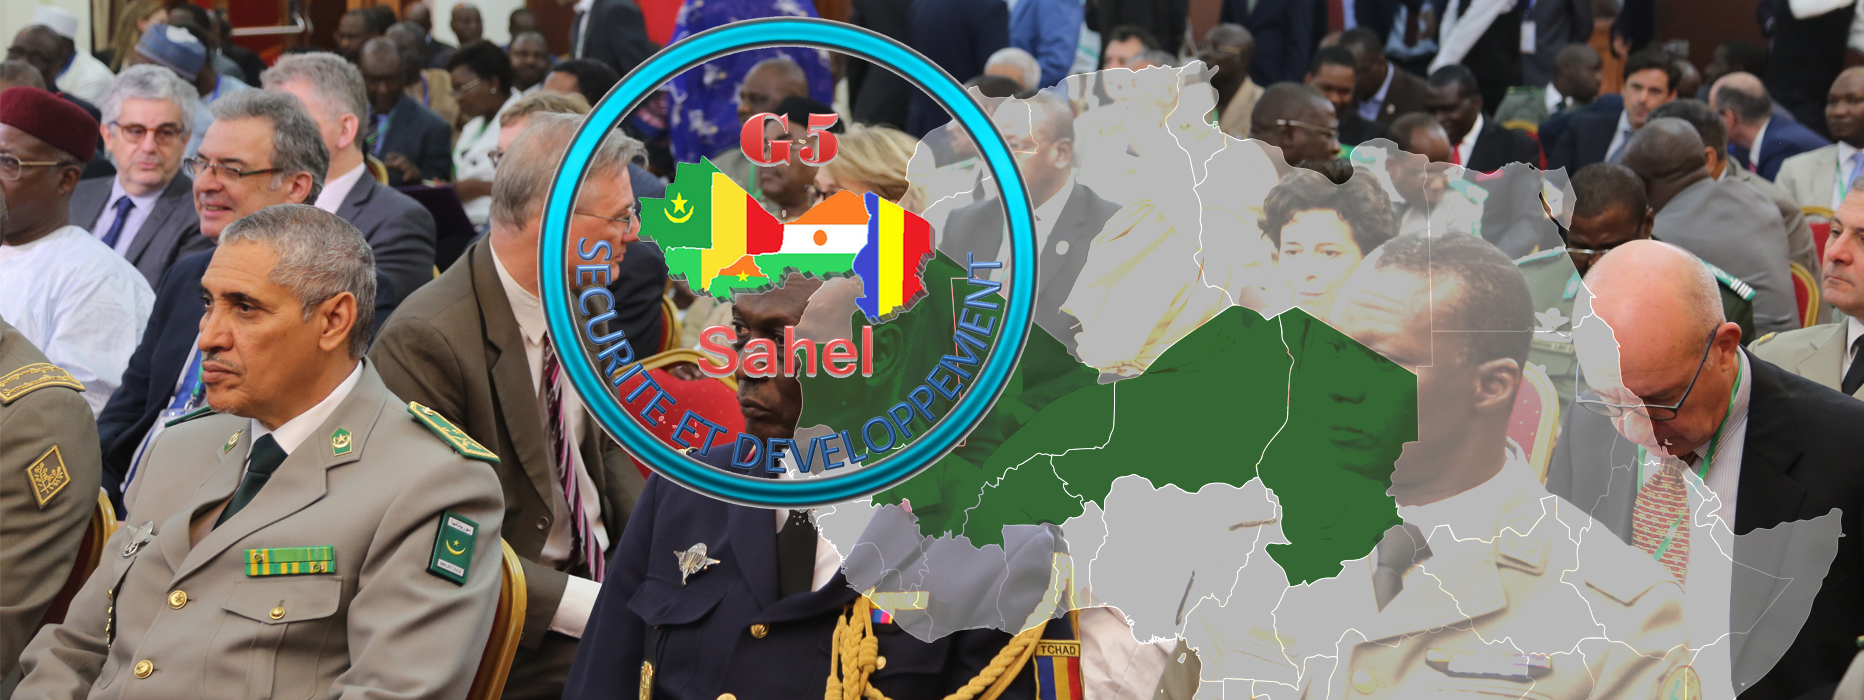 West Africa security forum opens amid funding concerns for G5 Sahel force